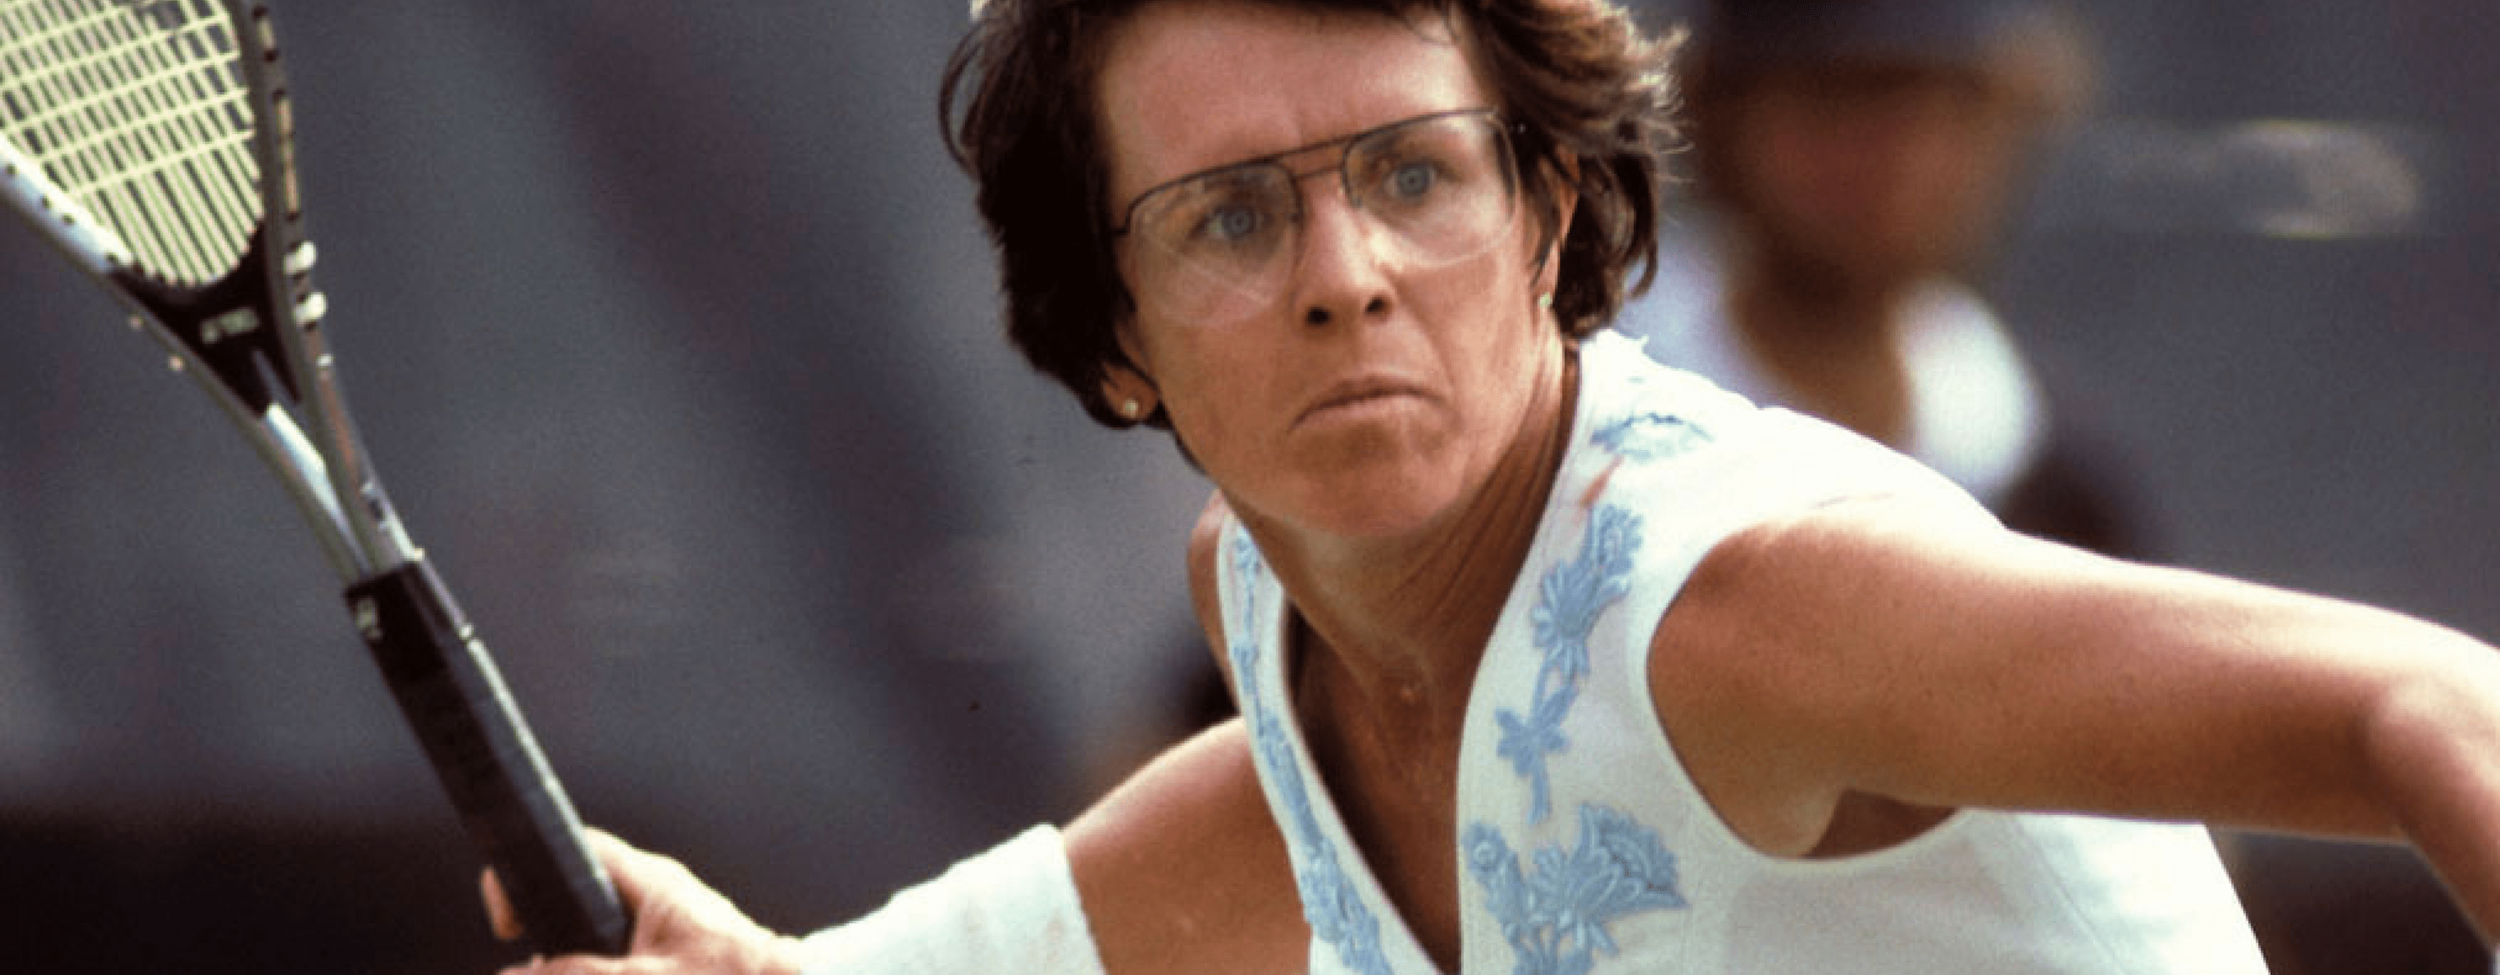 Billy Jean King and the battle of the sexes